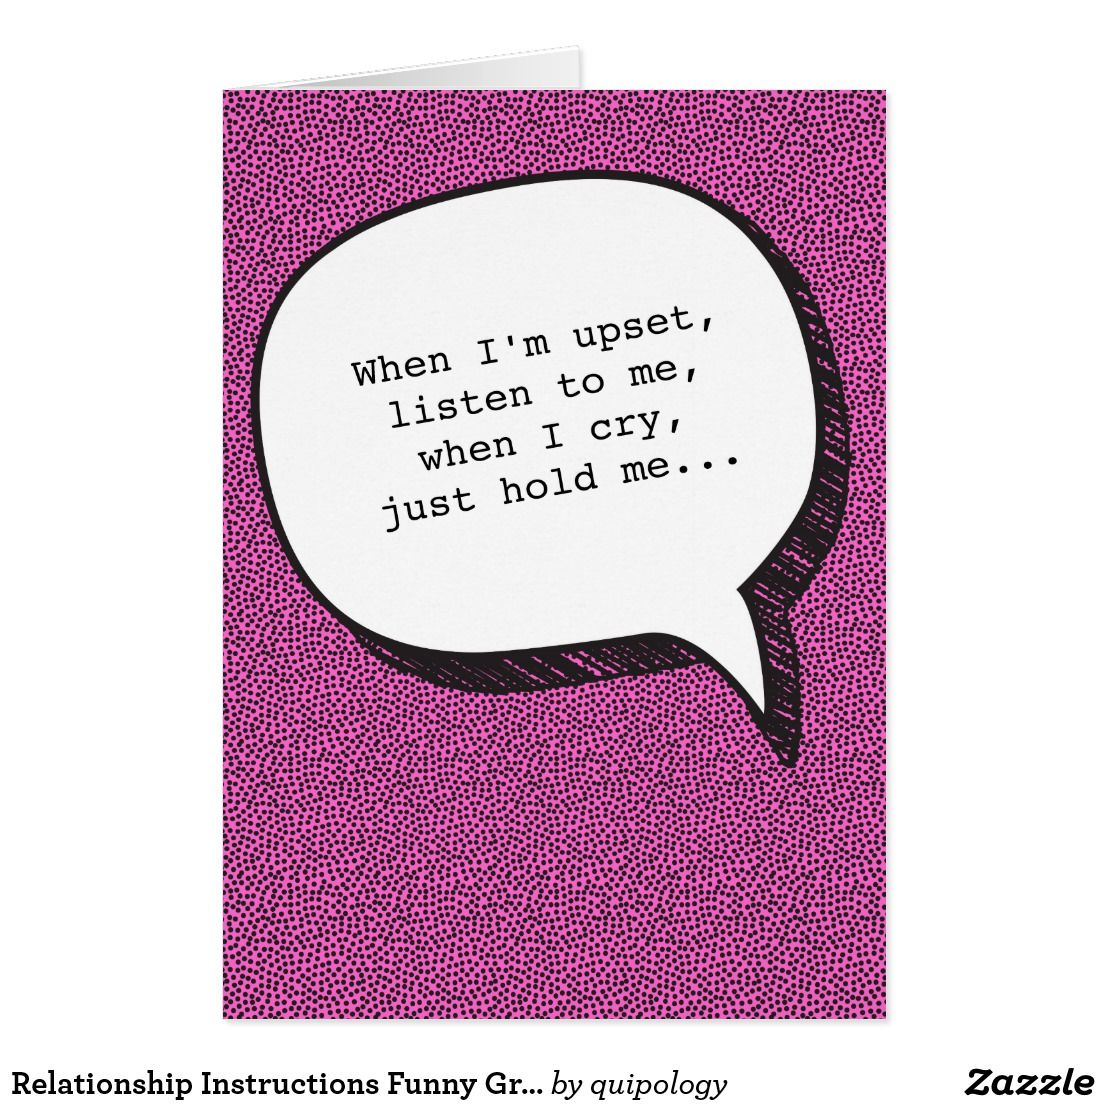 Relationship Instructions Funny Greeting Card Funny Greeting Cards